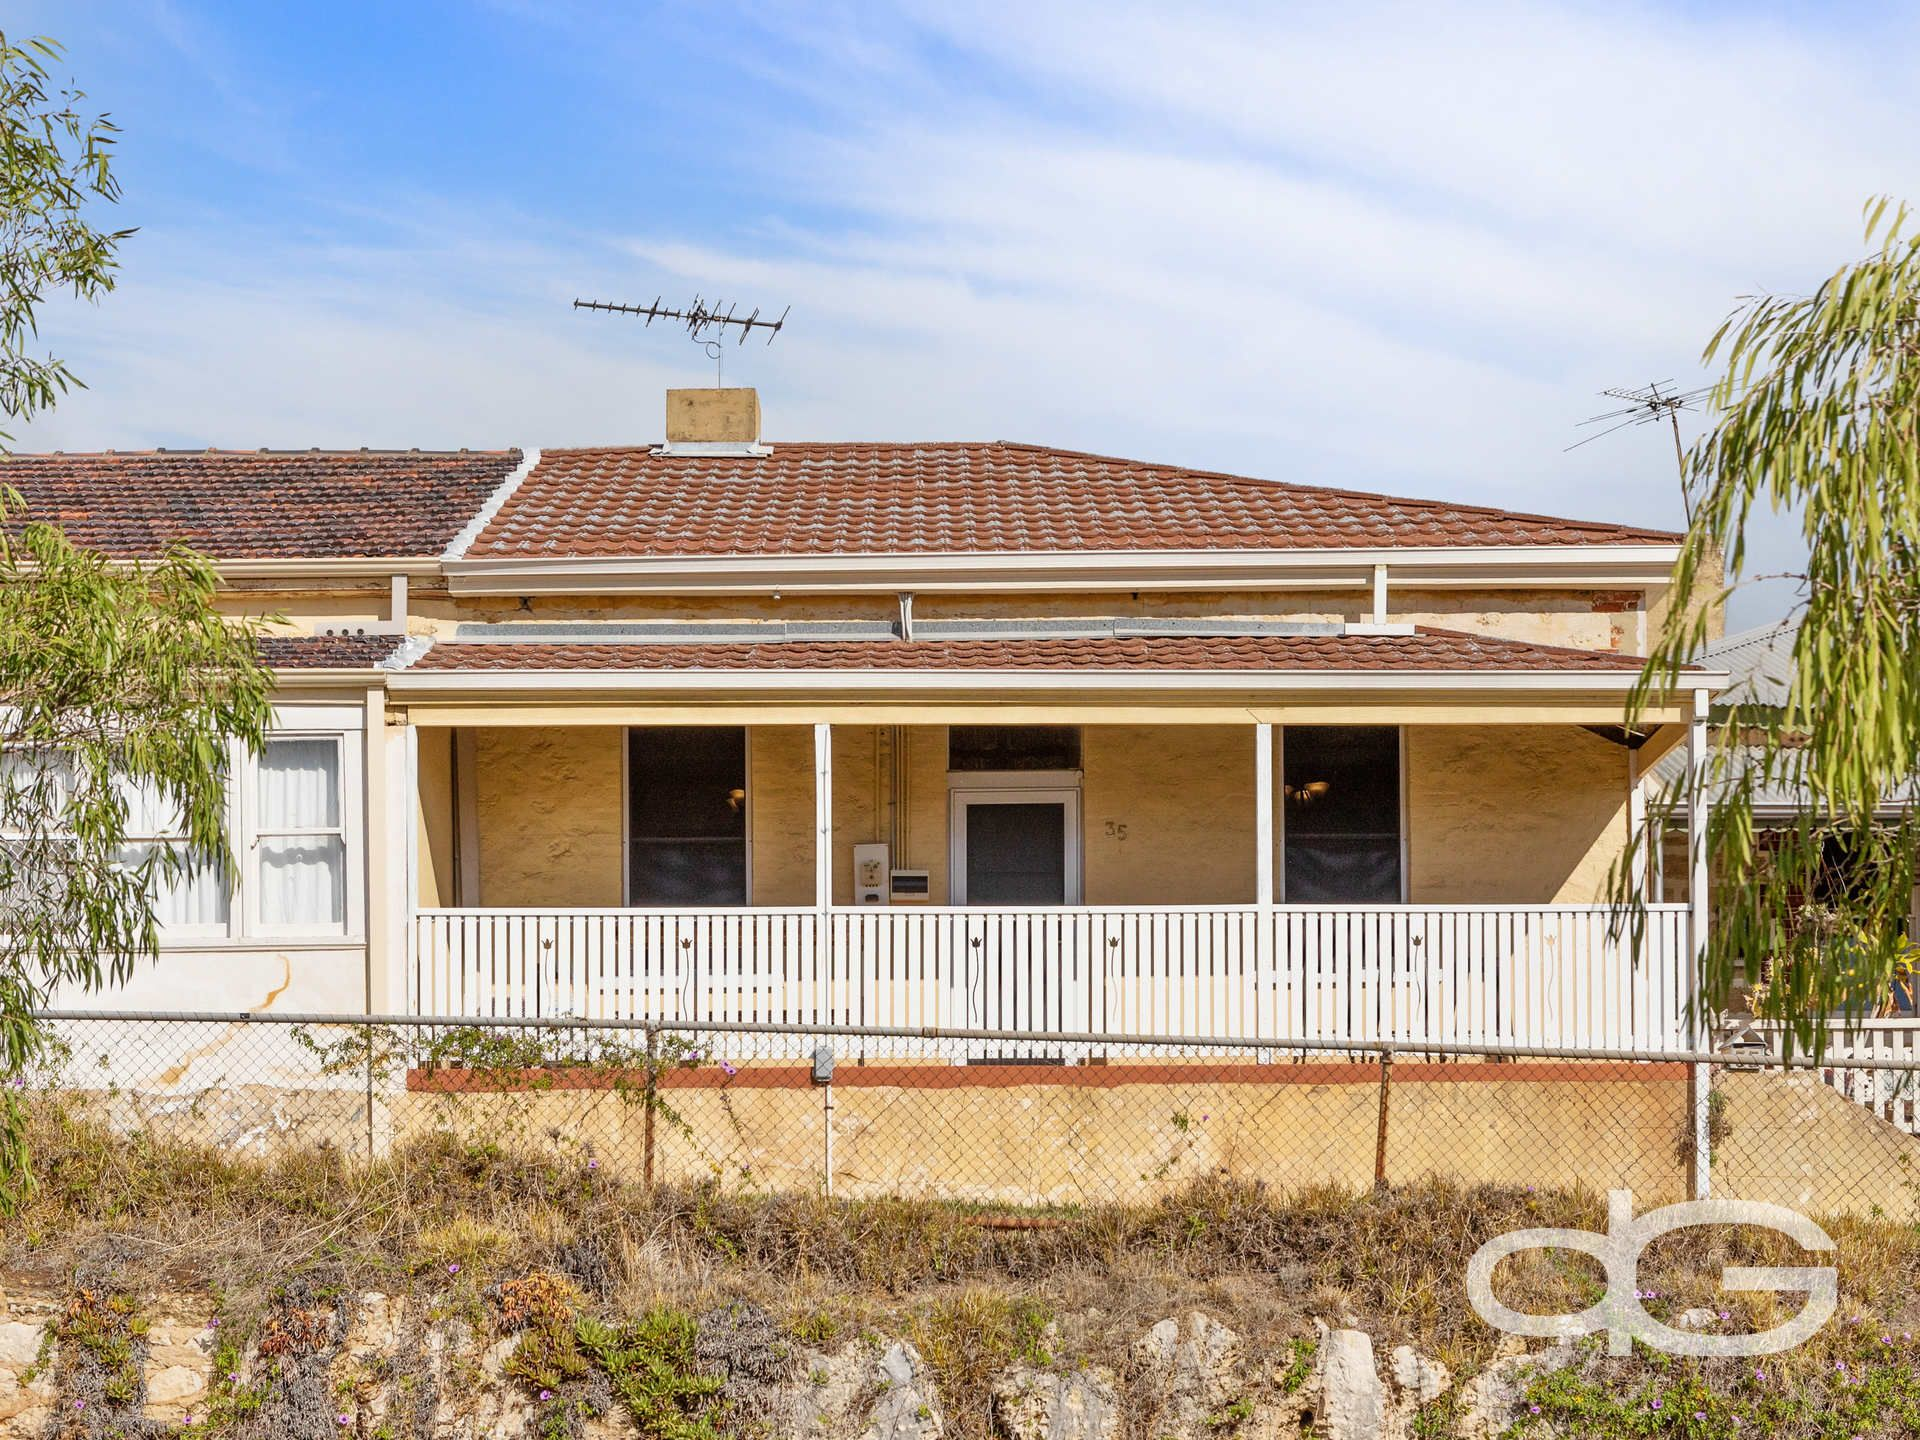 35 Malcolm Street - Fremantle , WA 6160 - House For Sale